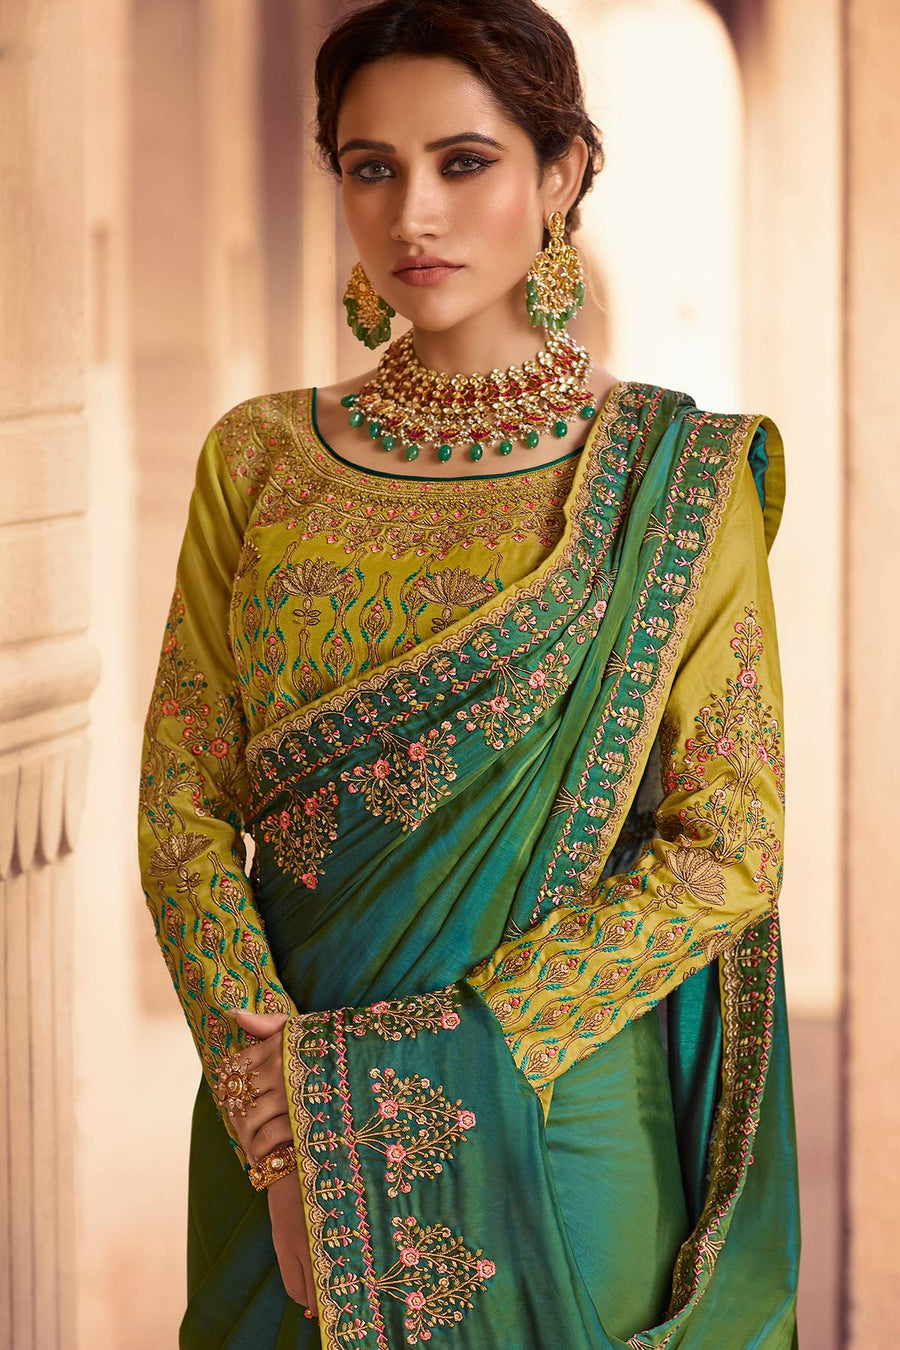 Pear and Olive Green Designer Silk Sari